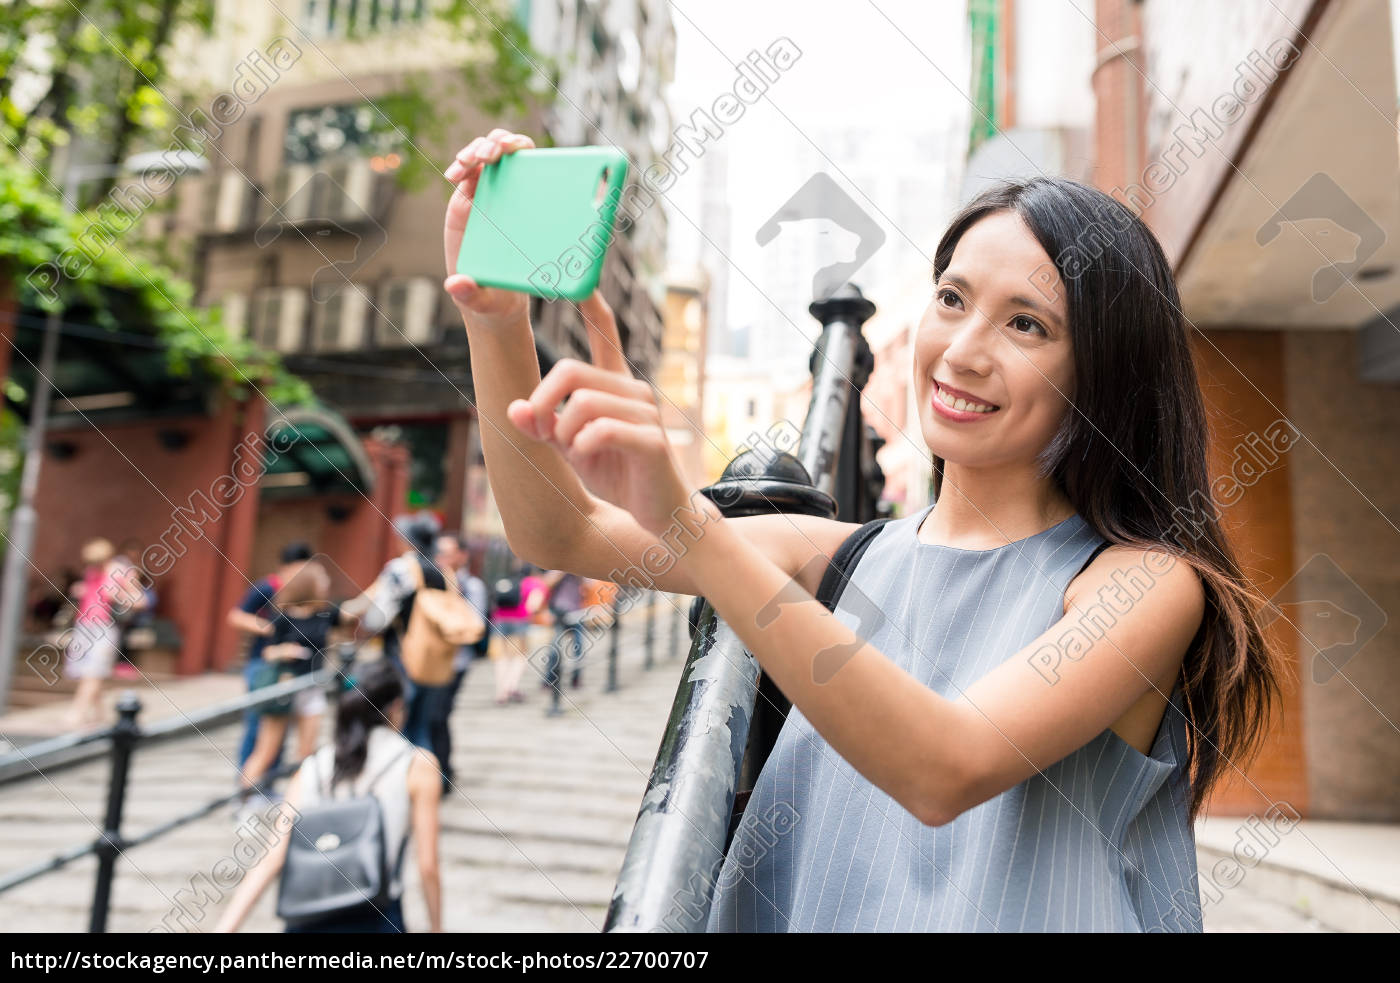 woman, taking, photo, with, cellphone, in - 22700707